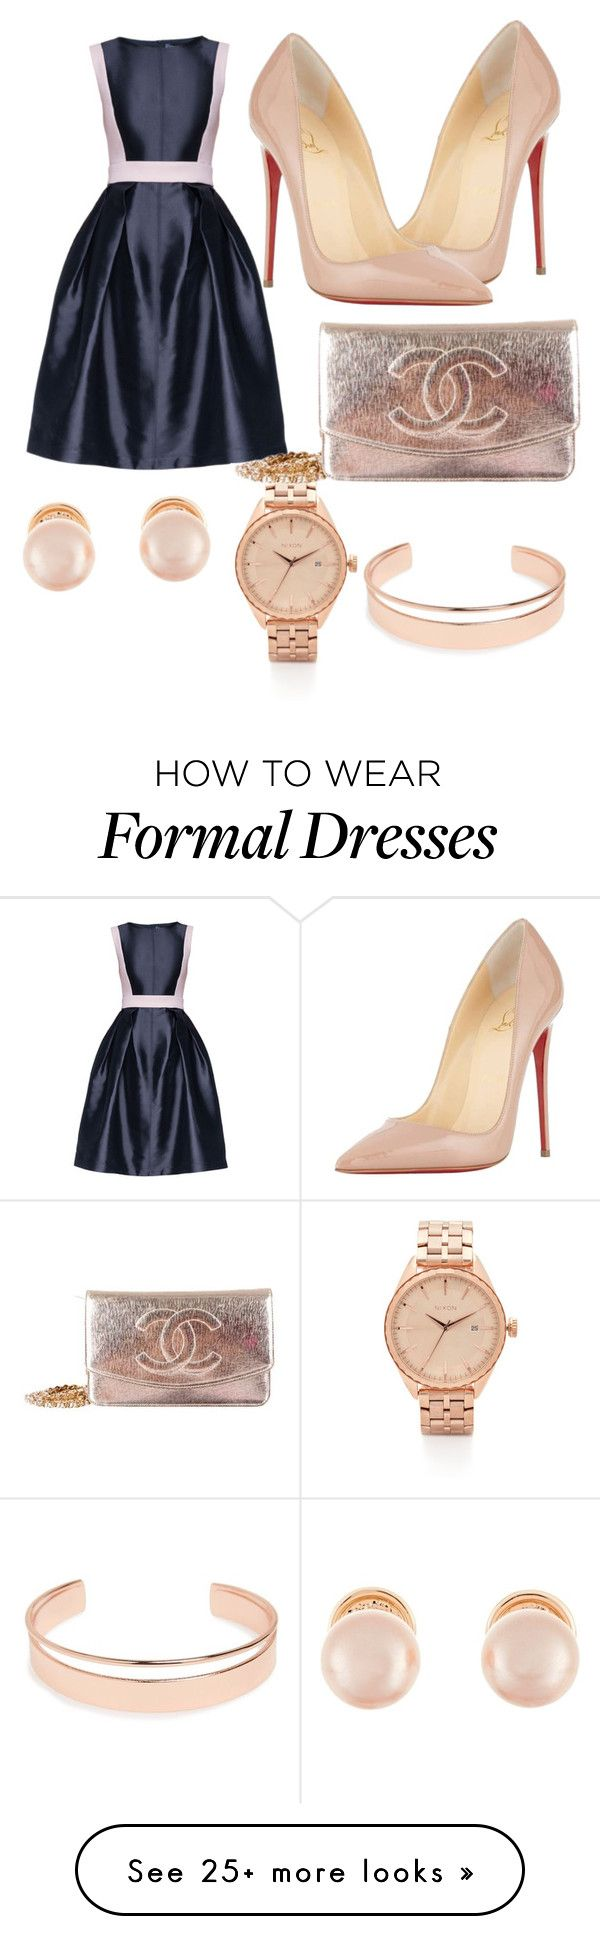 Something Formal by nisavillanueva on Polyvore featuring Lattori, Christian Louboutin, Kenneth Jay Lane, Nixon, Leith and Chanel